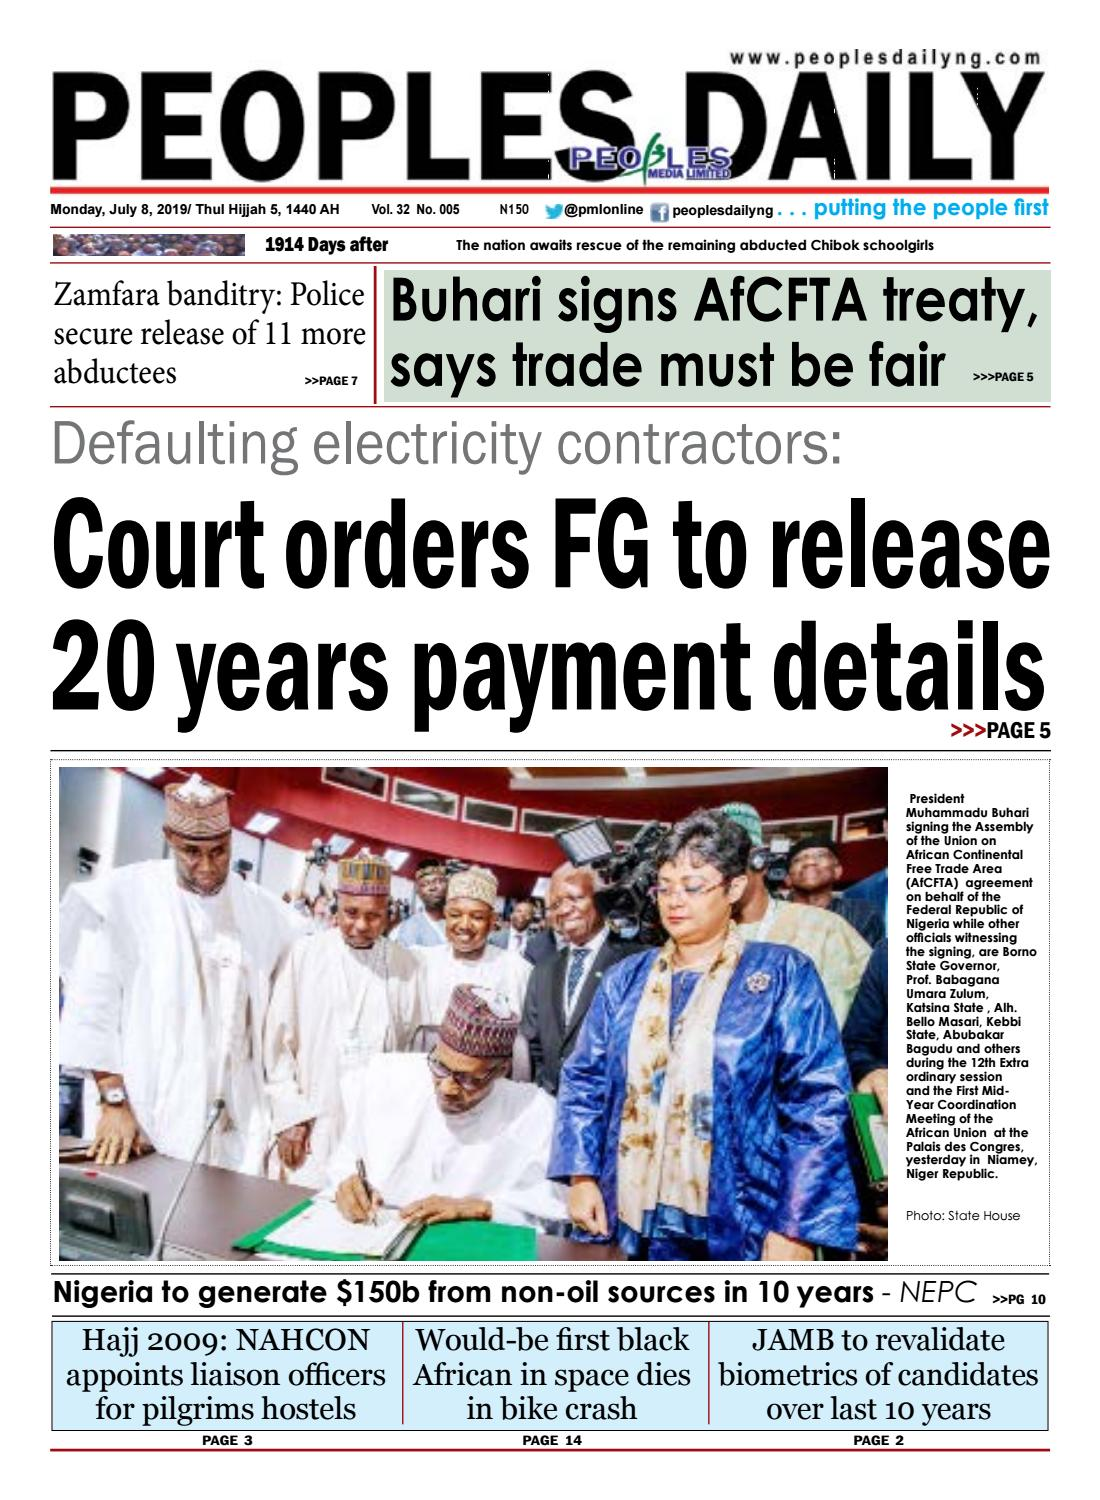 Monday, July 8, 2019 Edition by Peoples Media Limited - issuu